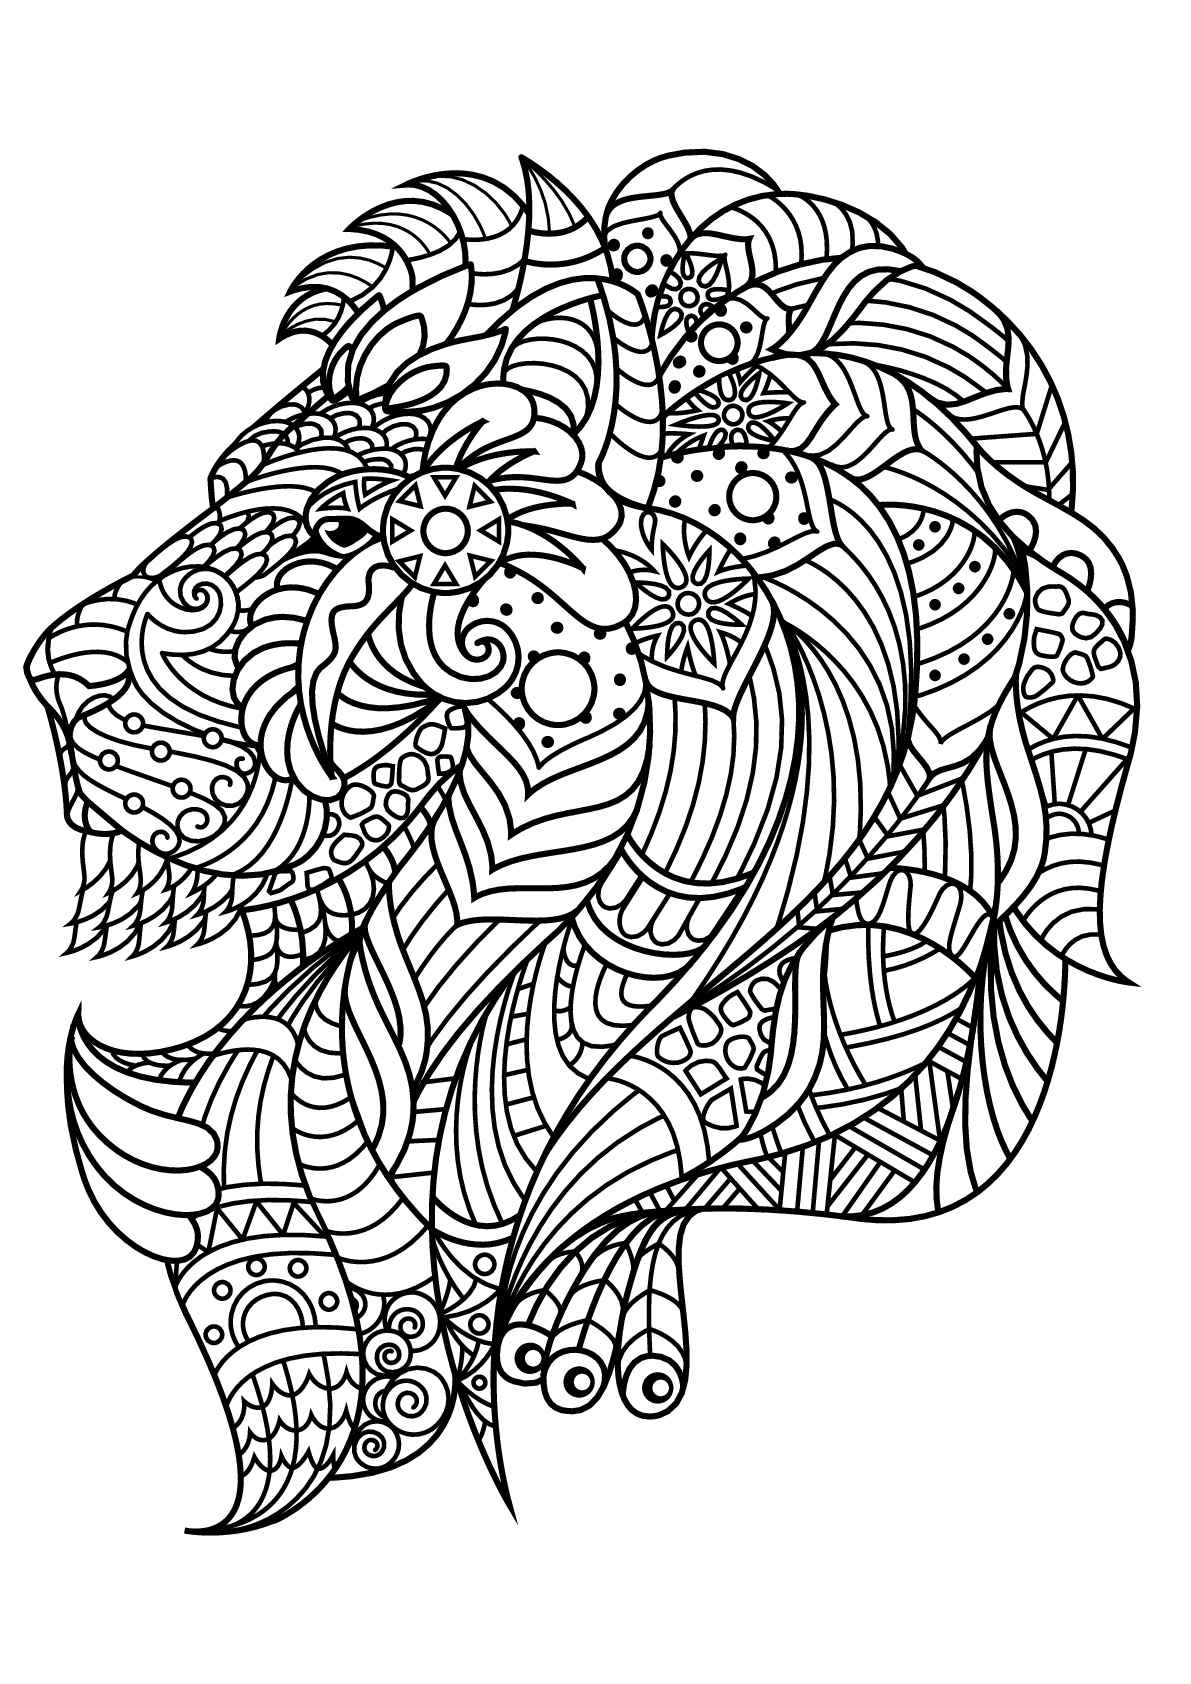 coloring page of a lion free easy to print lion coloring pages tulamama coloring lion page of a